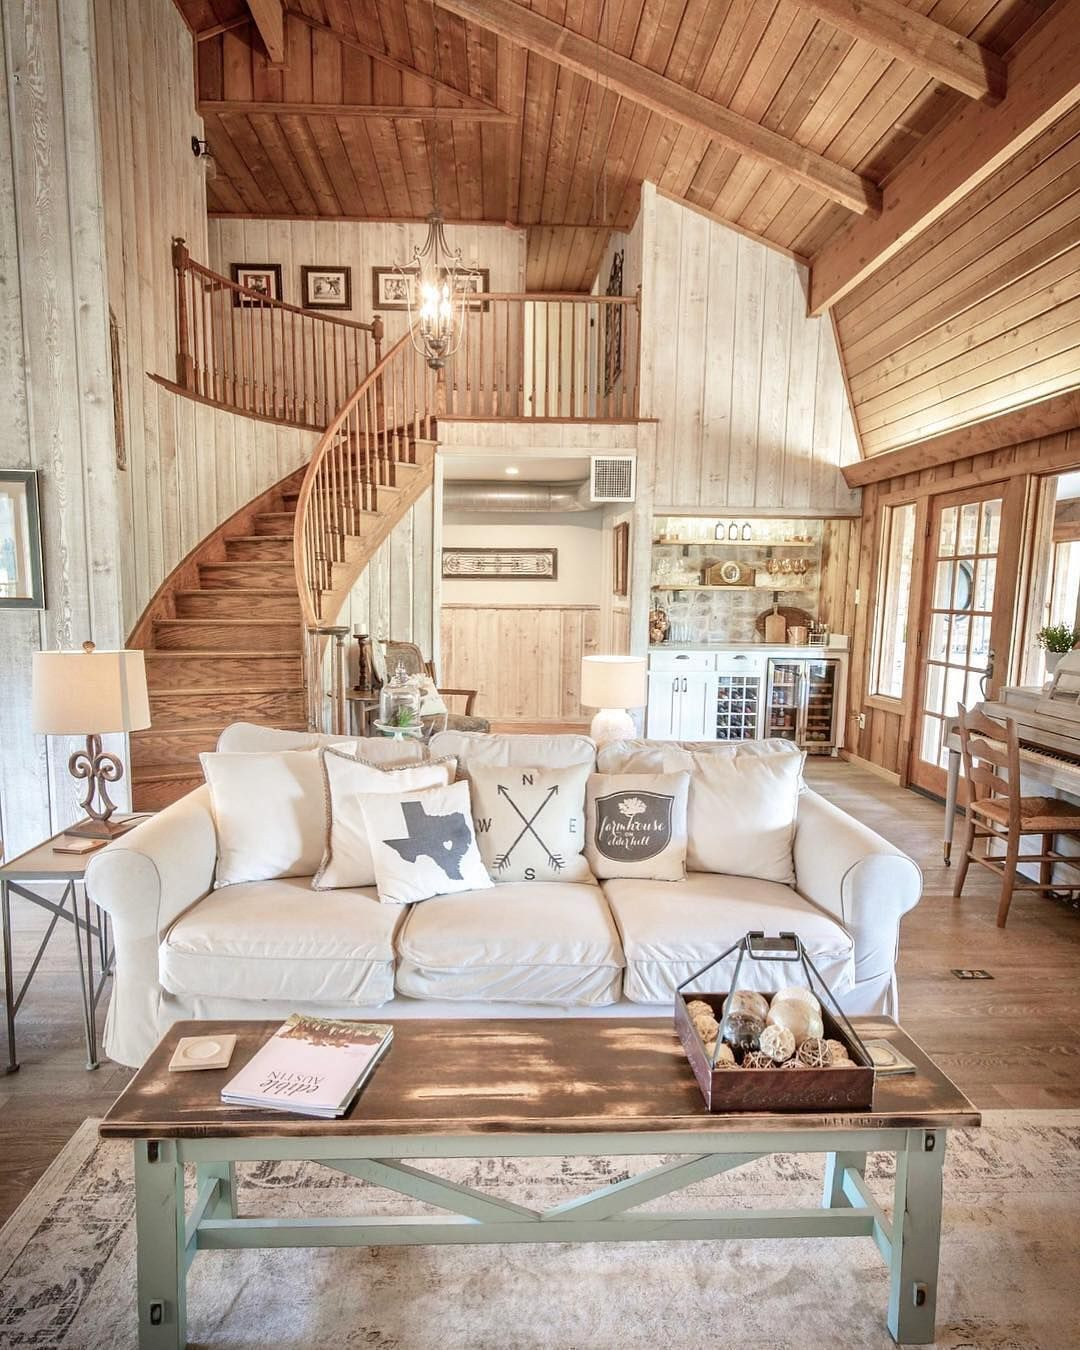 Farmhouse Fanatics On Instagram What Do Y All Think About This Country Style Cabin Interior Design Living Room Farmhouse Interior Farmhouse Interior Design